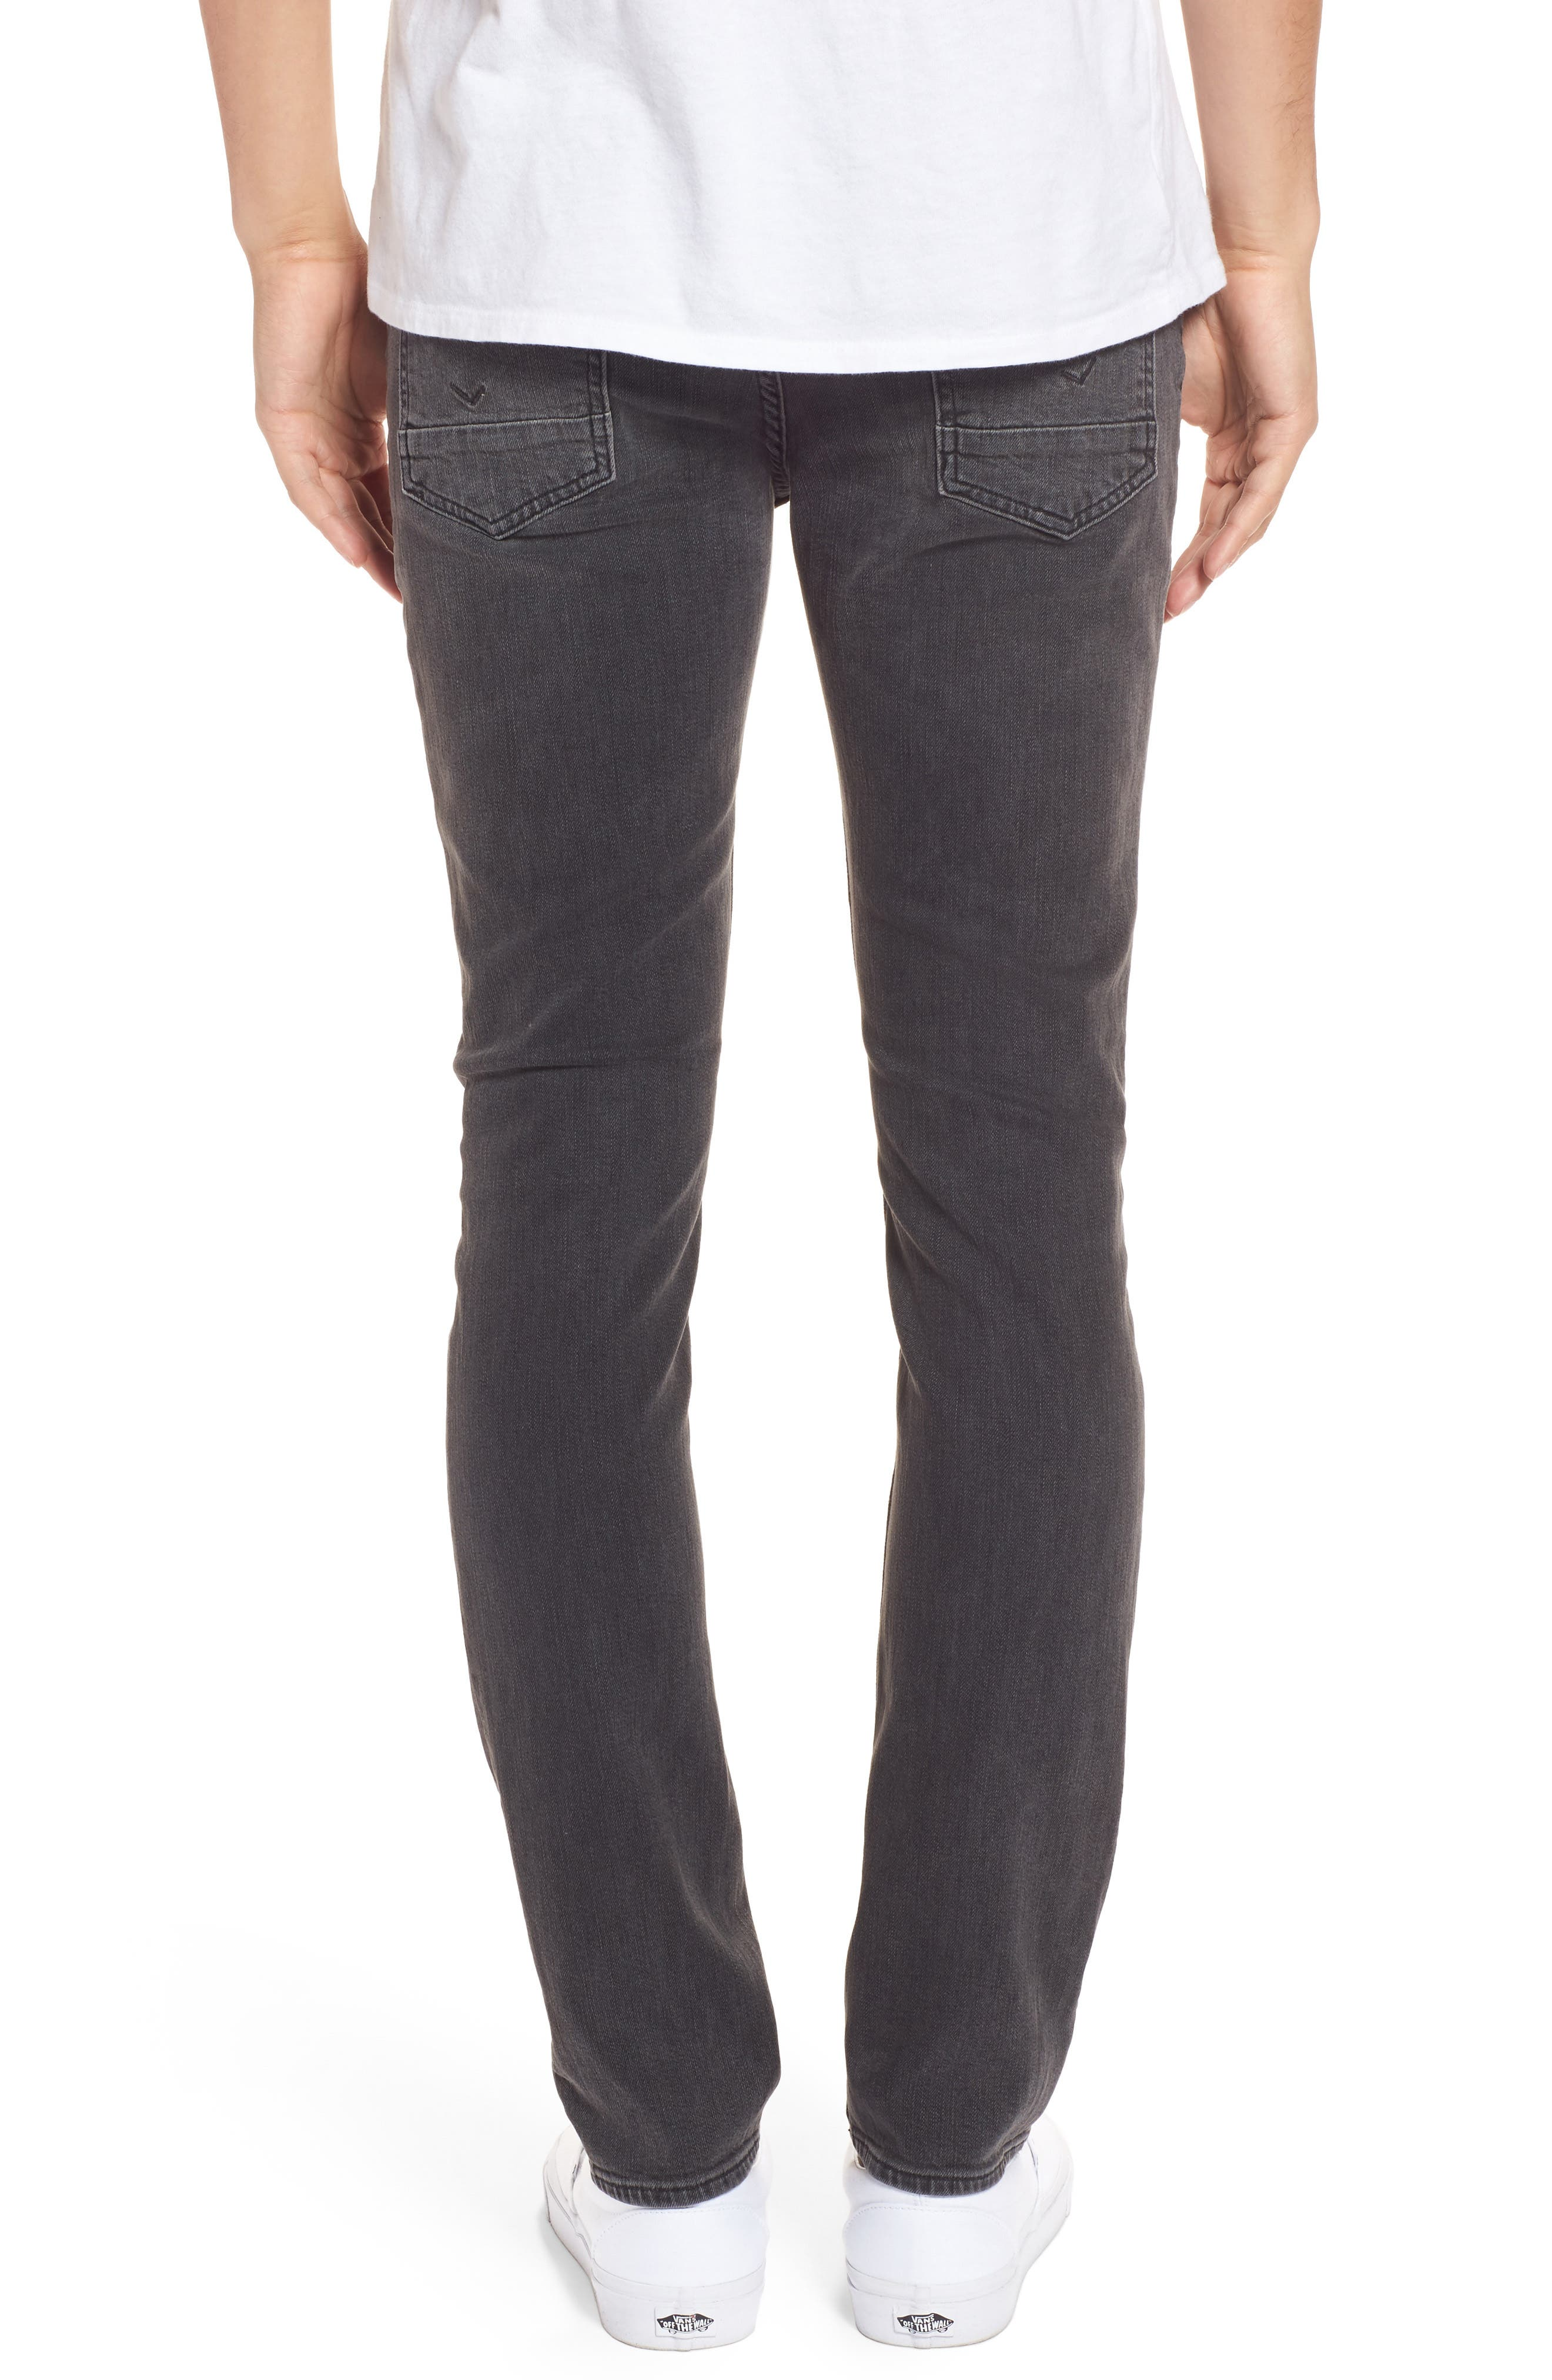 Axl Skinny Fit Jeans,                             Alternate thumbnail 2, color,                             Oxidize